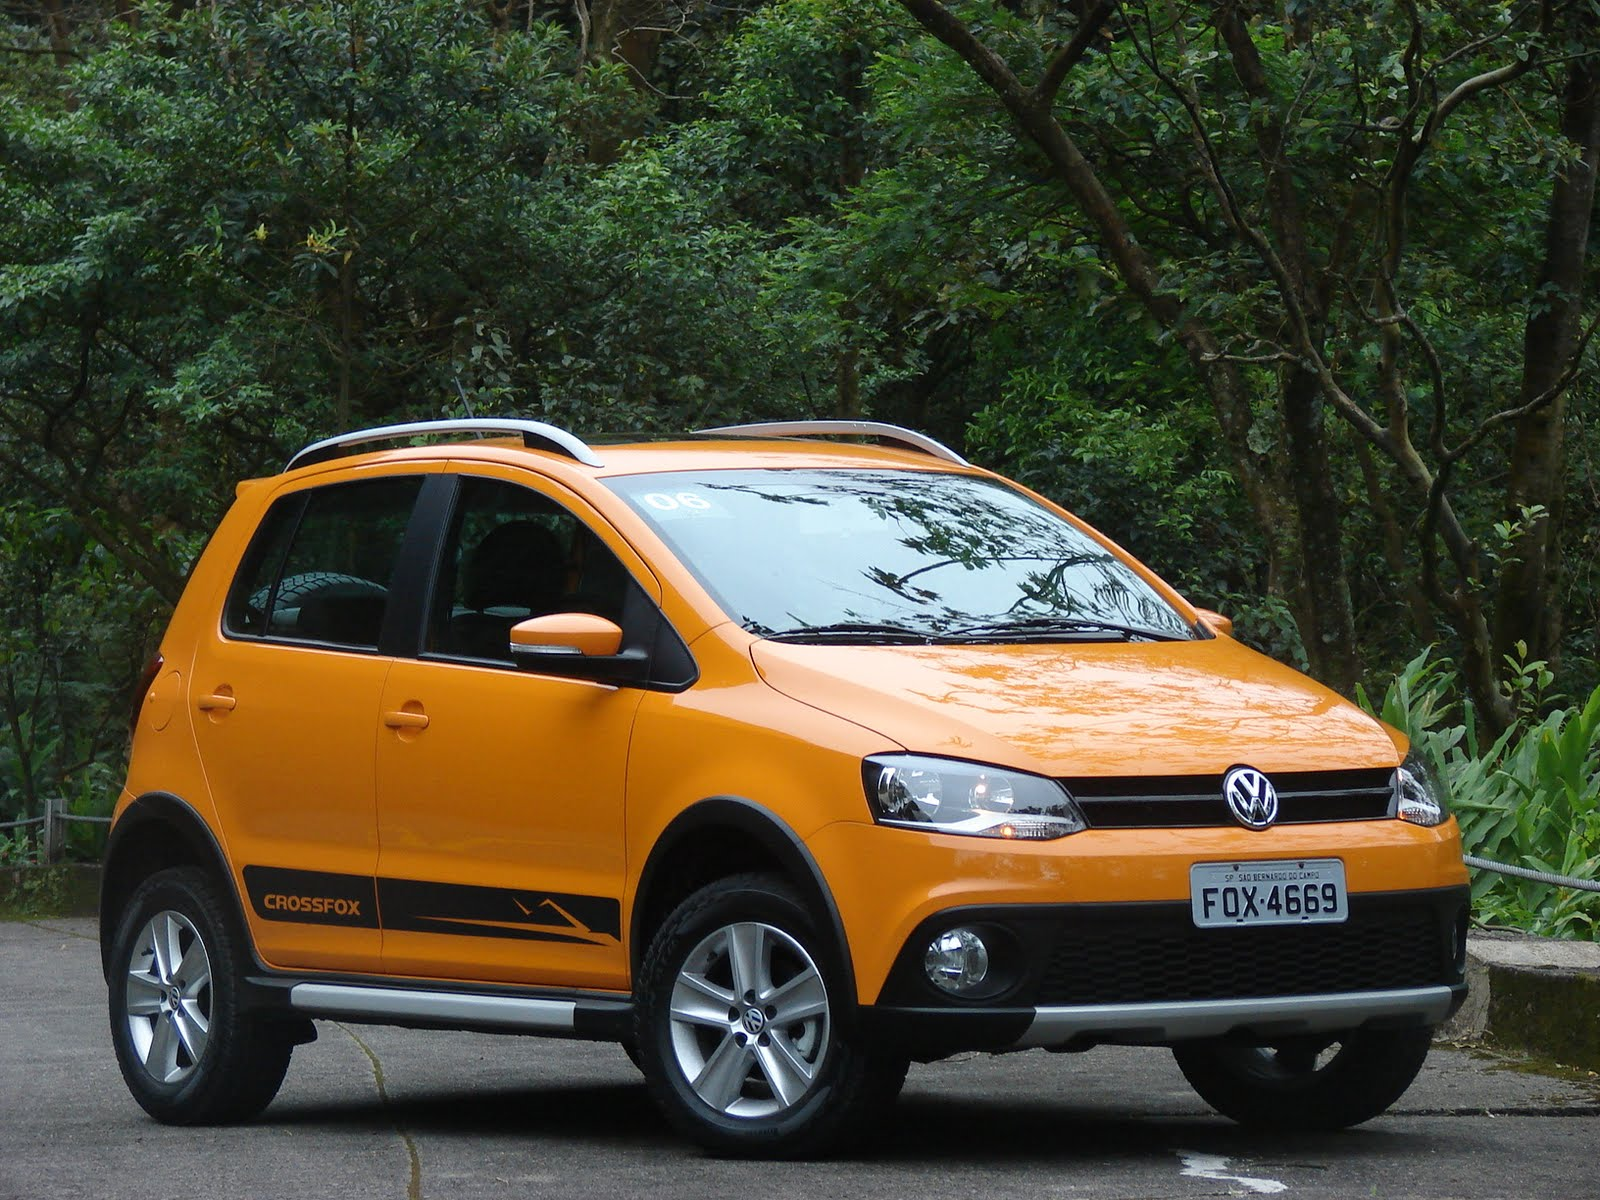 Volkswagen CrossFox 2007 photo - 3